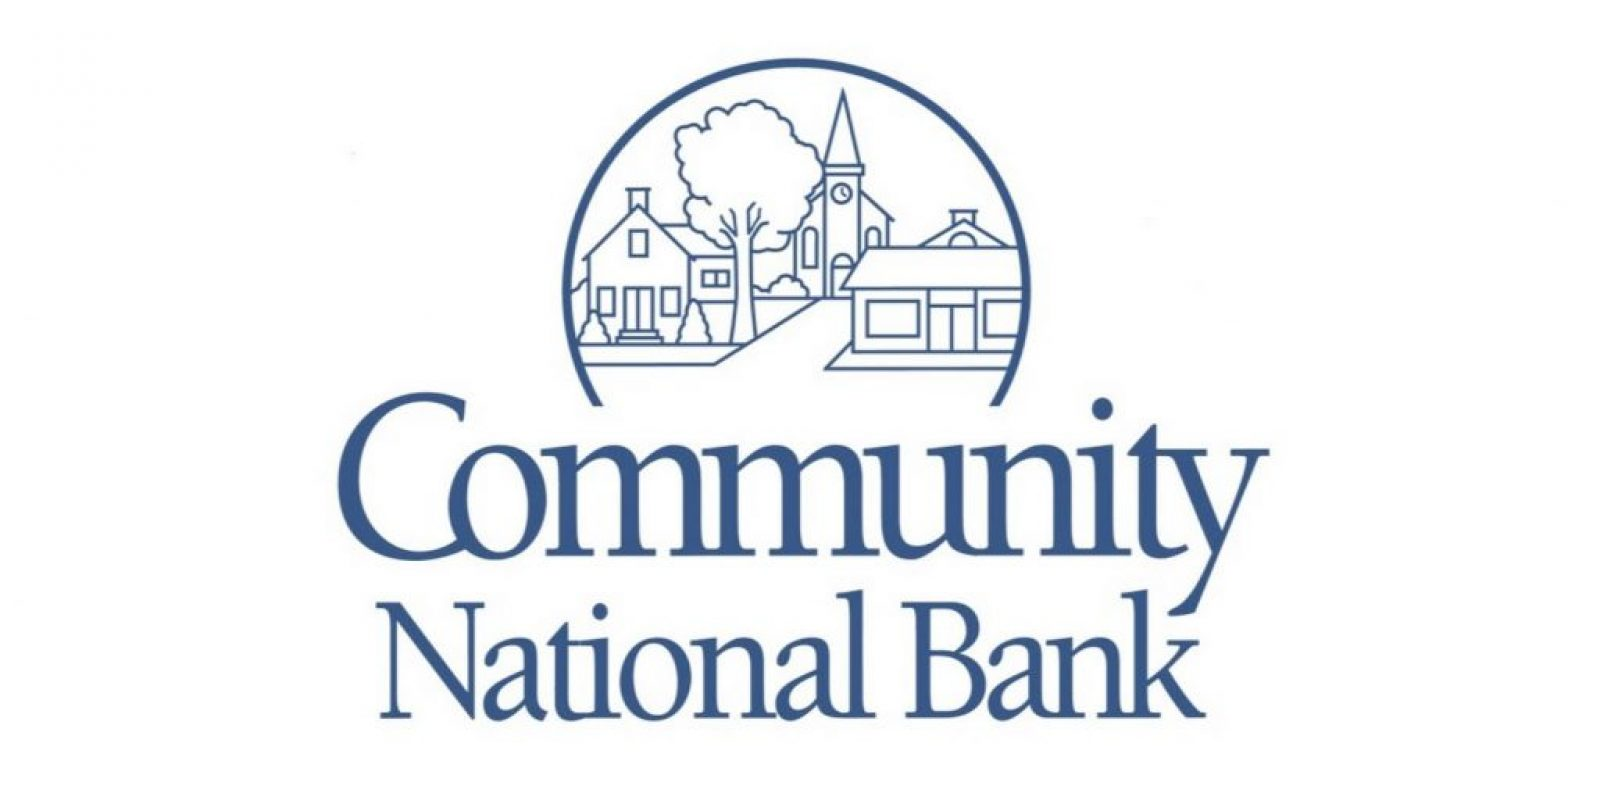 community-national-bank-logo